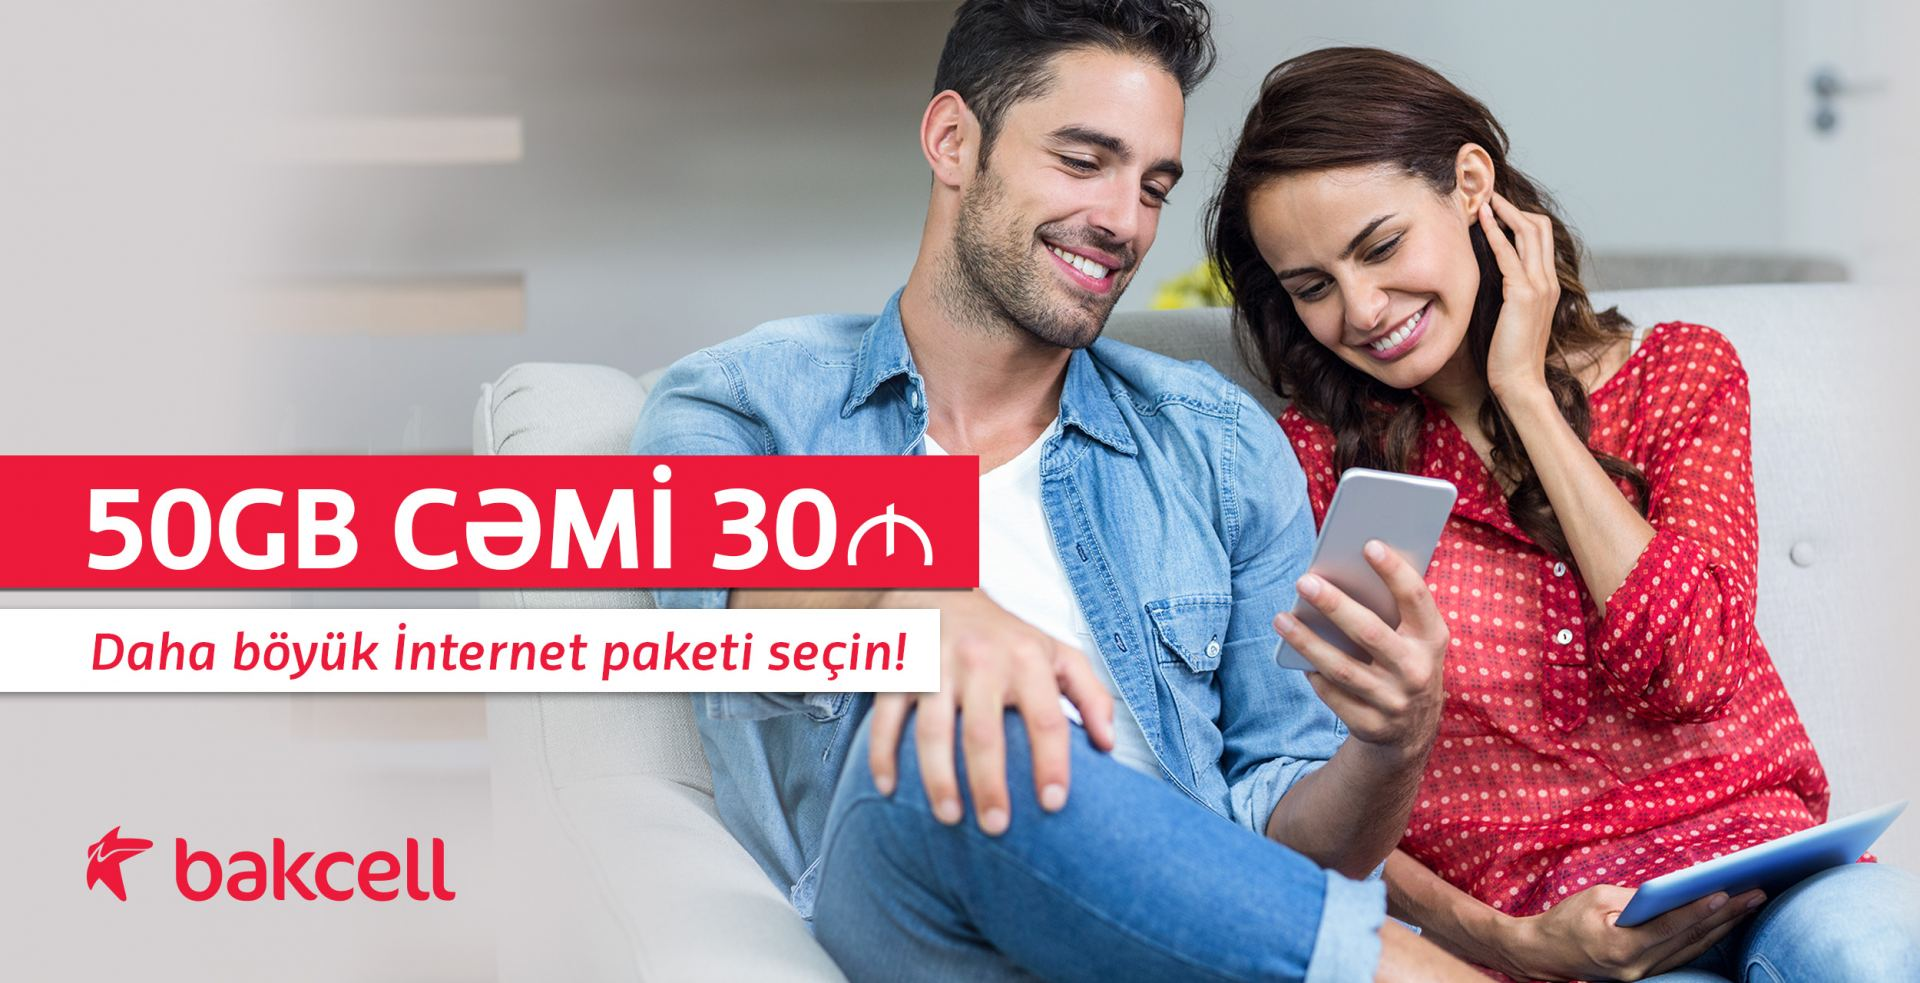 Bakcell offers 50 GB just for 30 AZN in the Fastest Mobile Network of Azerbaijan (PHOTO) - Gallery Image